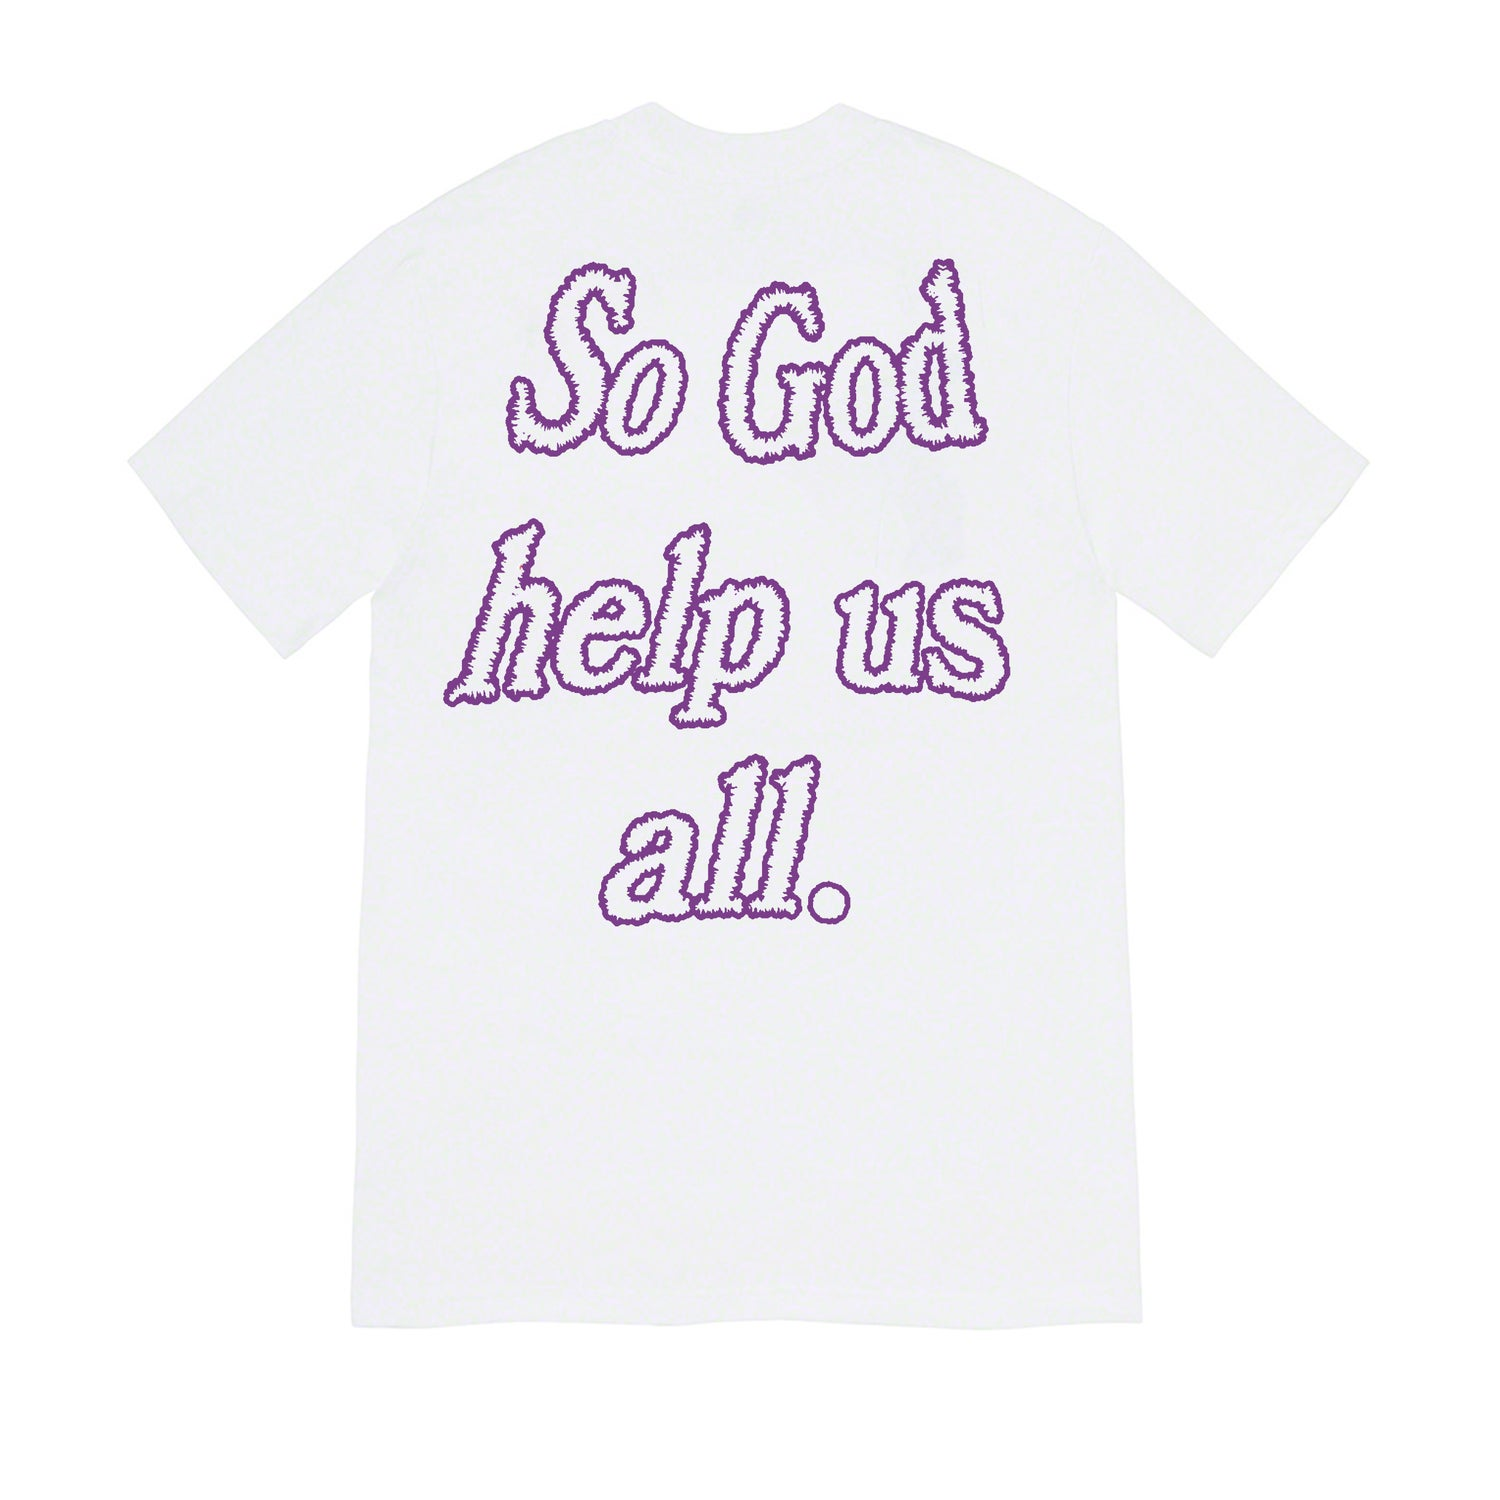 Image of Cry for help tee